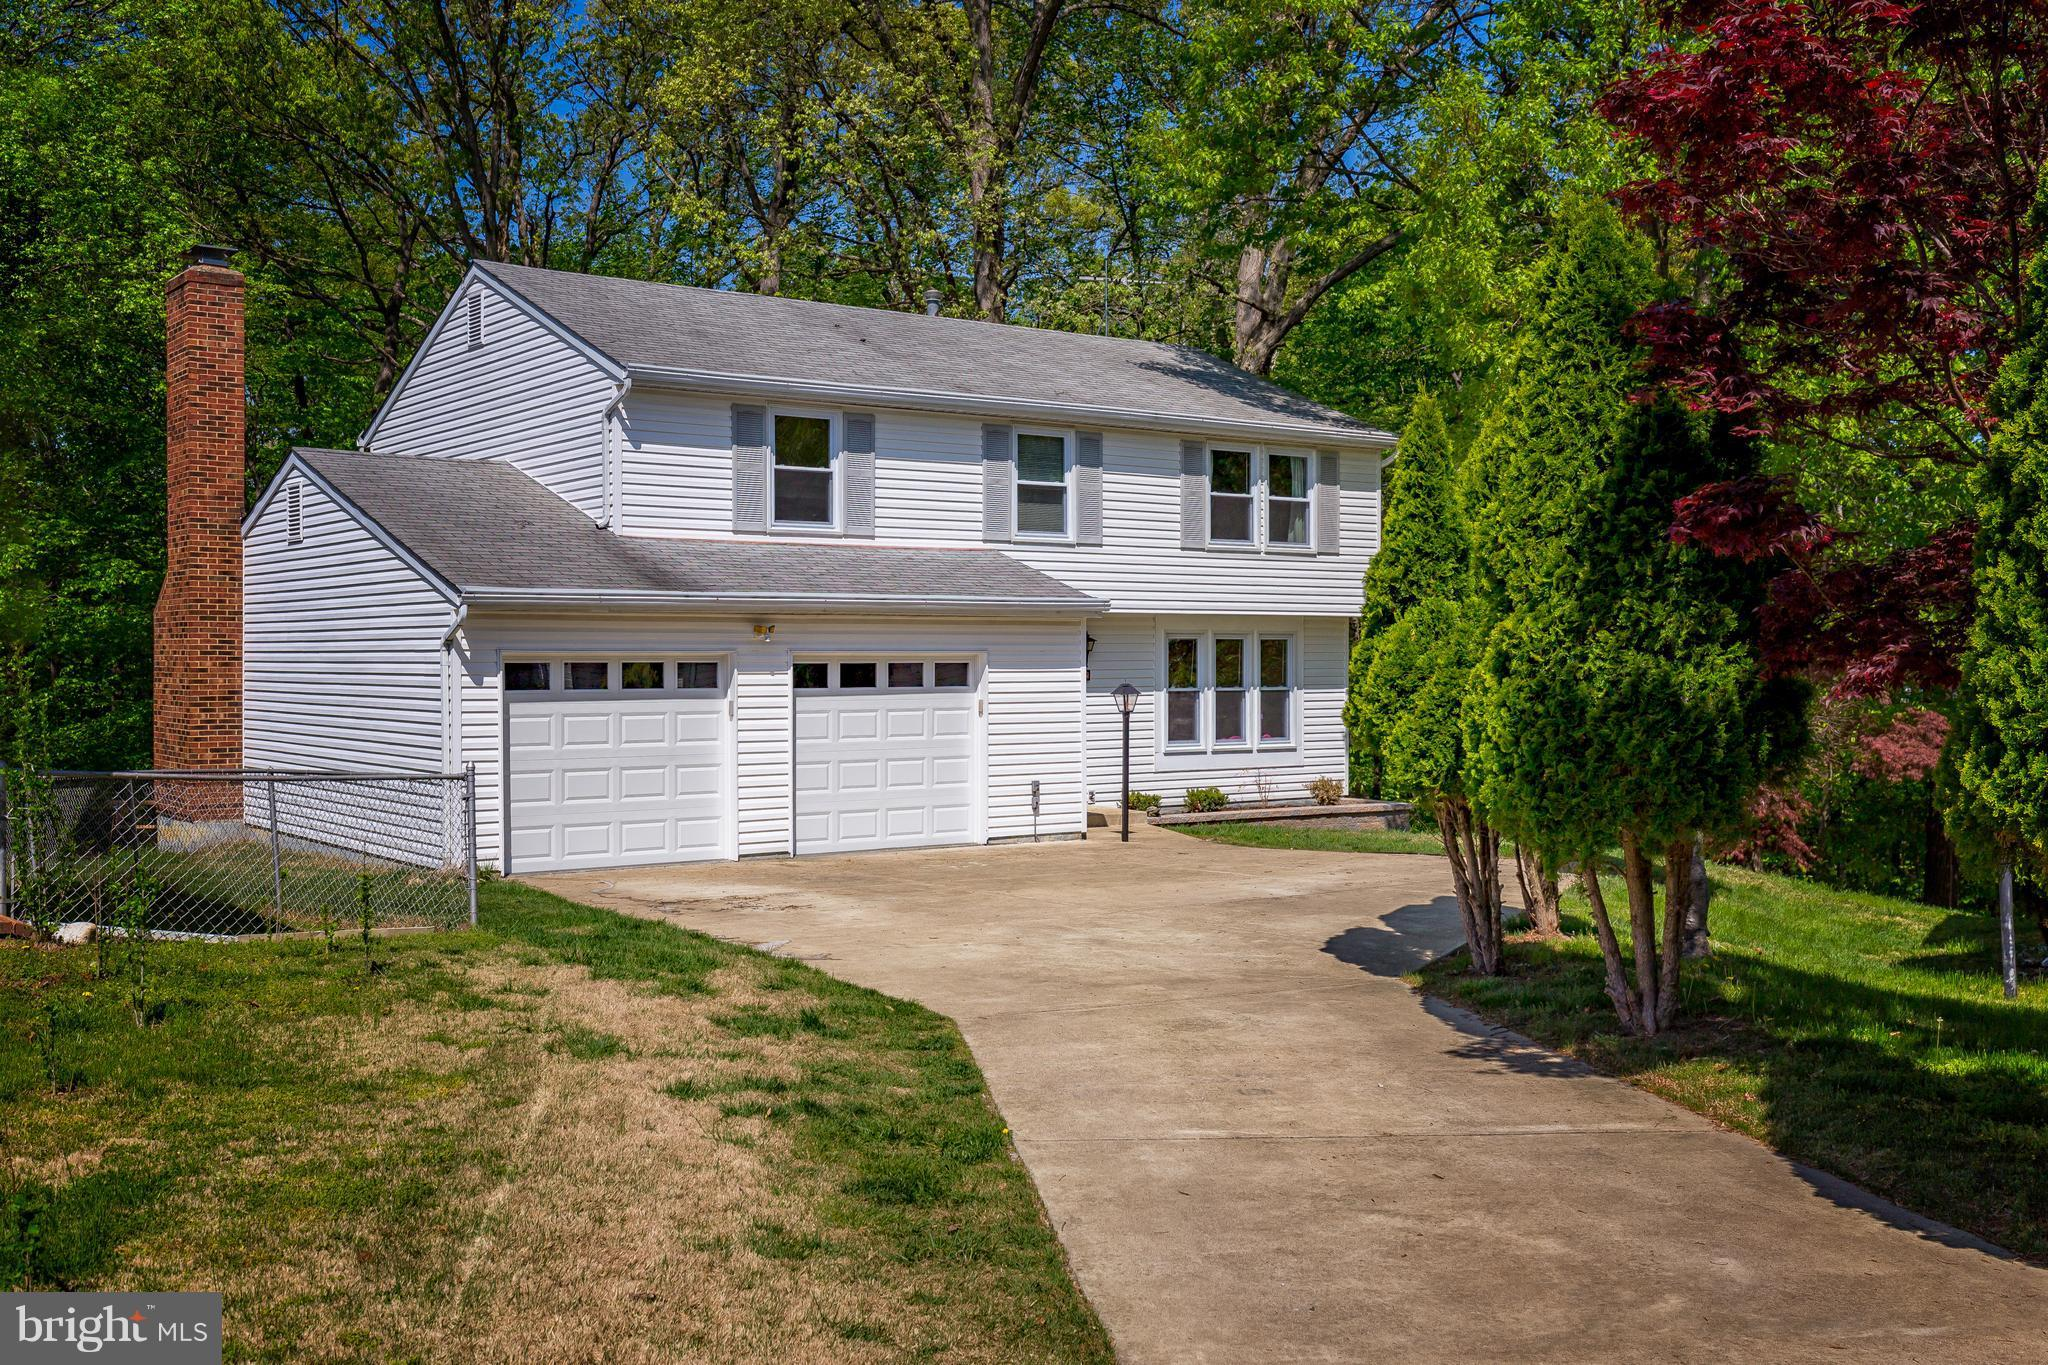 Spacious colonial with numerous upgrades including......EXTERIOR: windows,siding, driveway, gutters & roof, landscaping.....INTERIOR:  kitchen cabinets, stove, dishwasher, flooring...new HVAC.....gas fireplace....bathrooms redone...lower level finished with possible 5th bedroom and walk out.....second fireplace